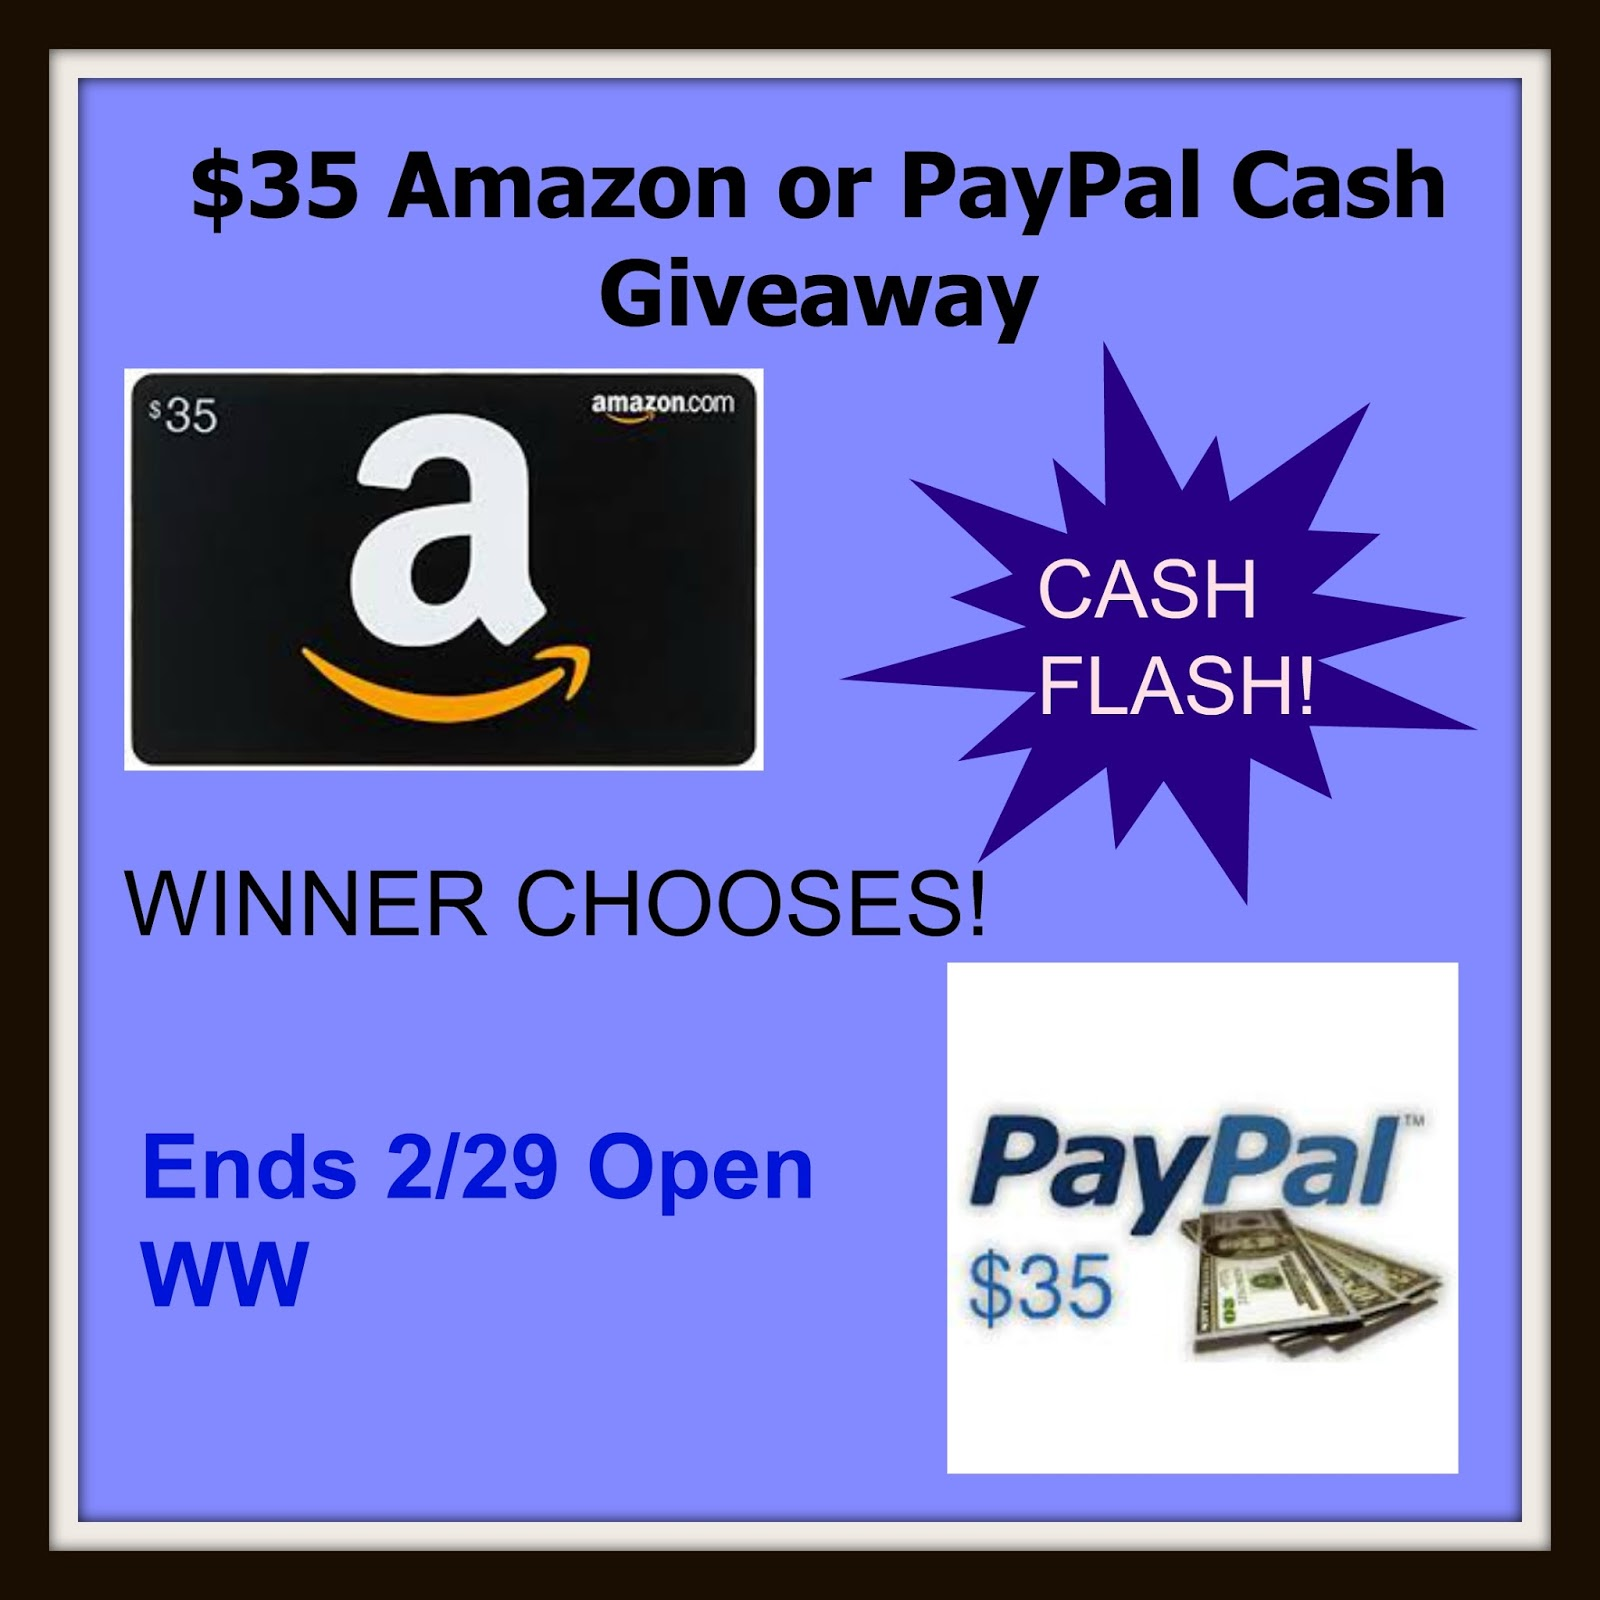 Top Notch Material: $35 Amazon or PayPal Cash Flash Giveaway